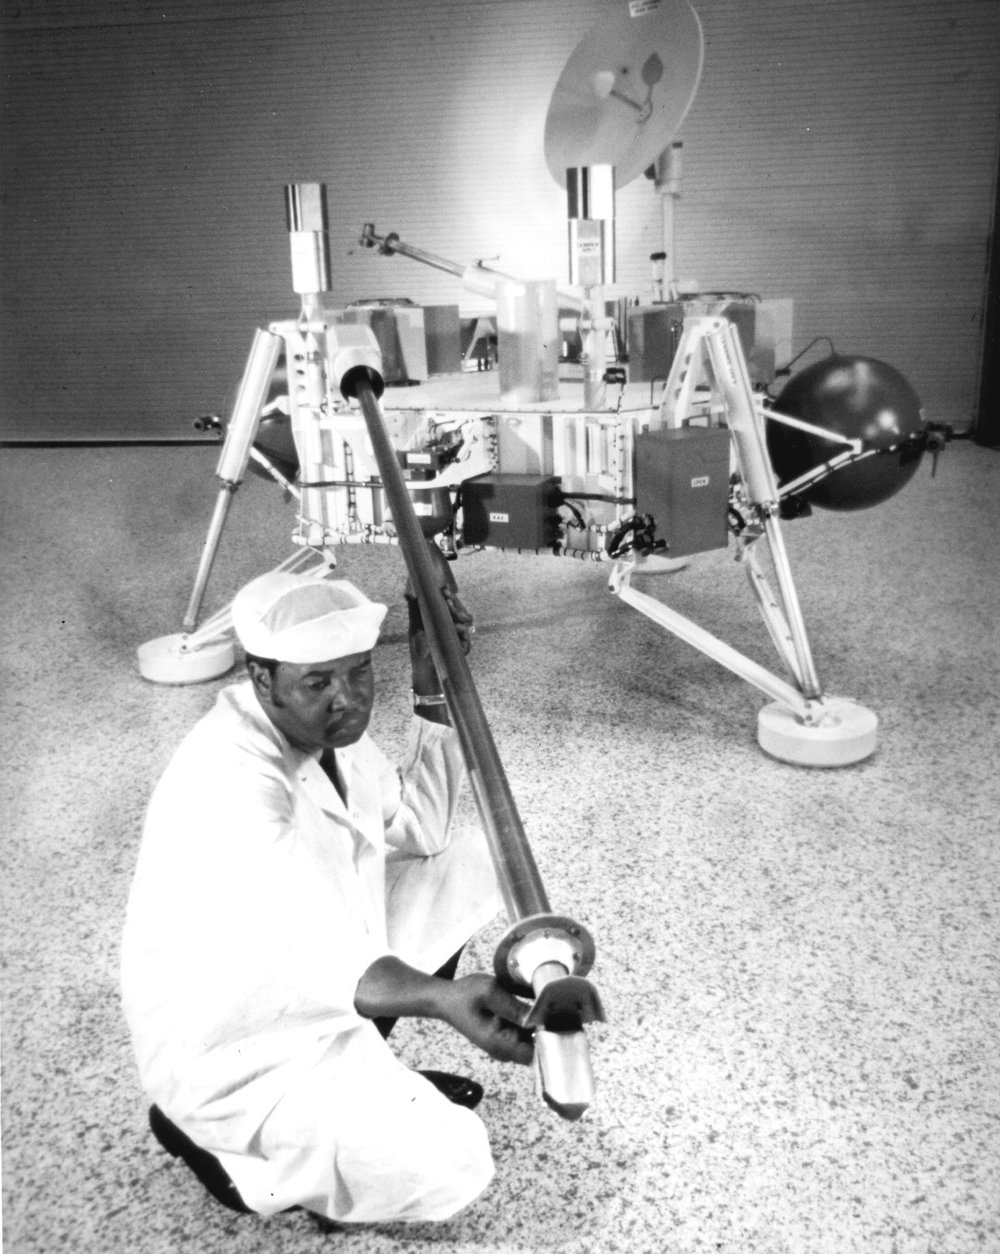 Image from NASA: A technician checking the sample arm of the Viking lander before launch